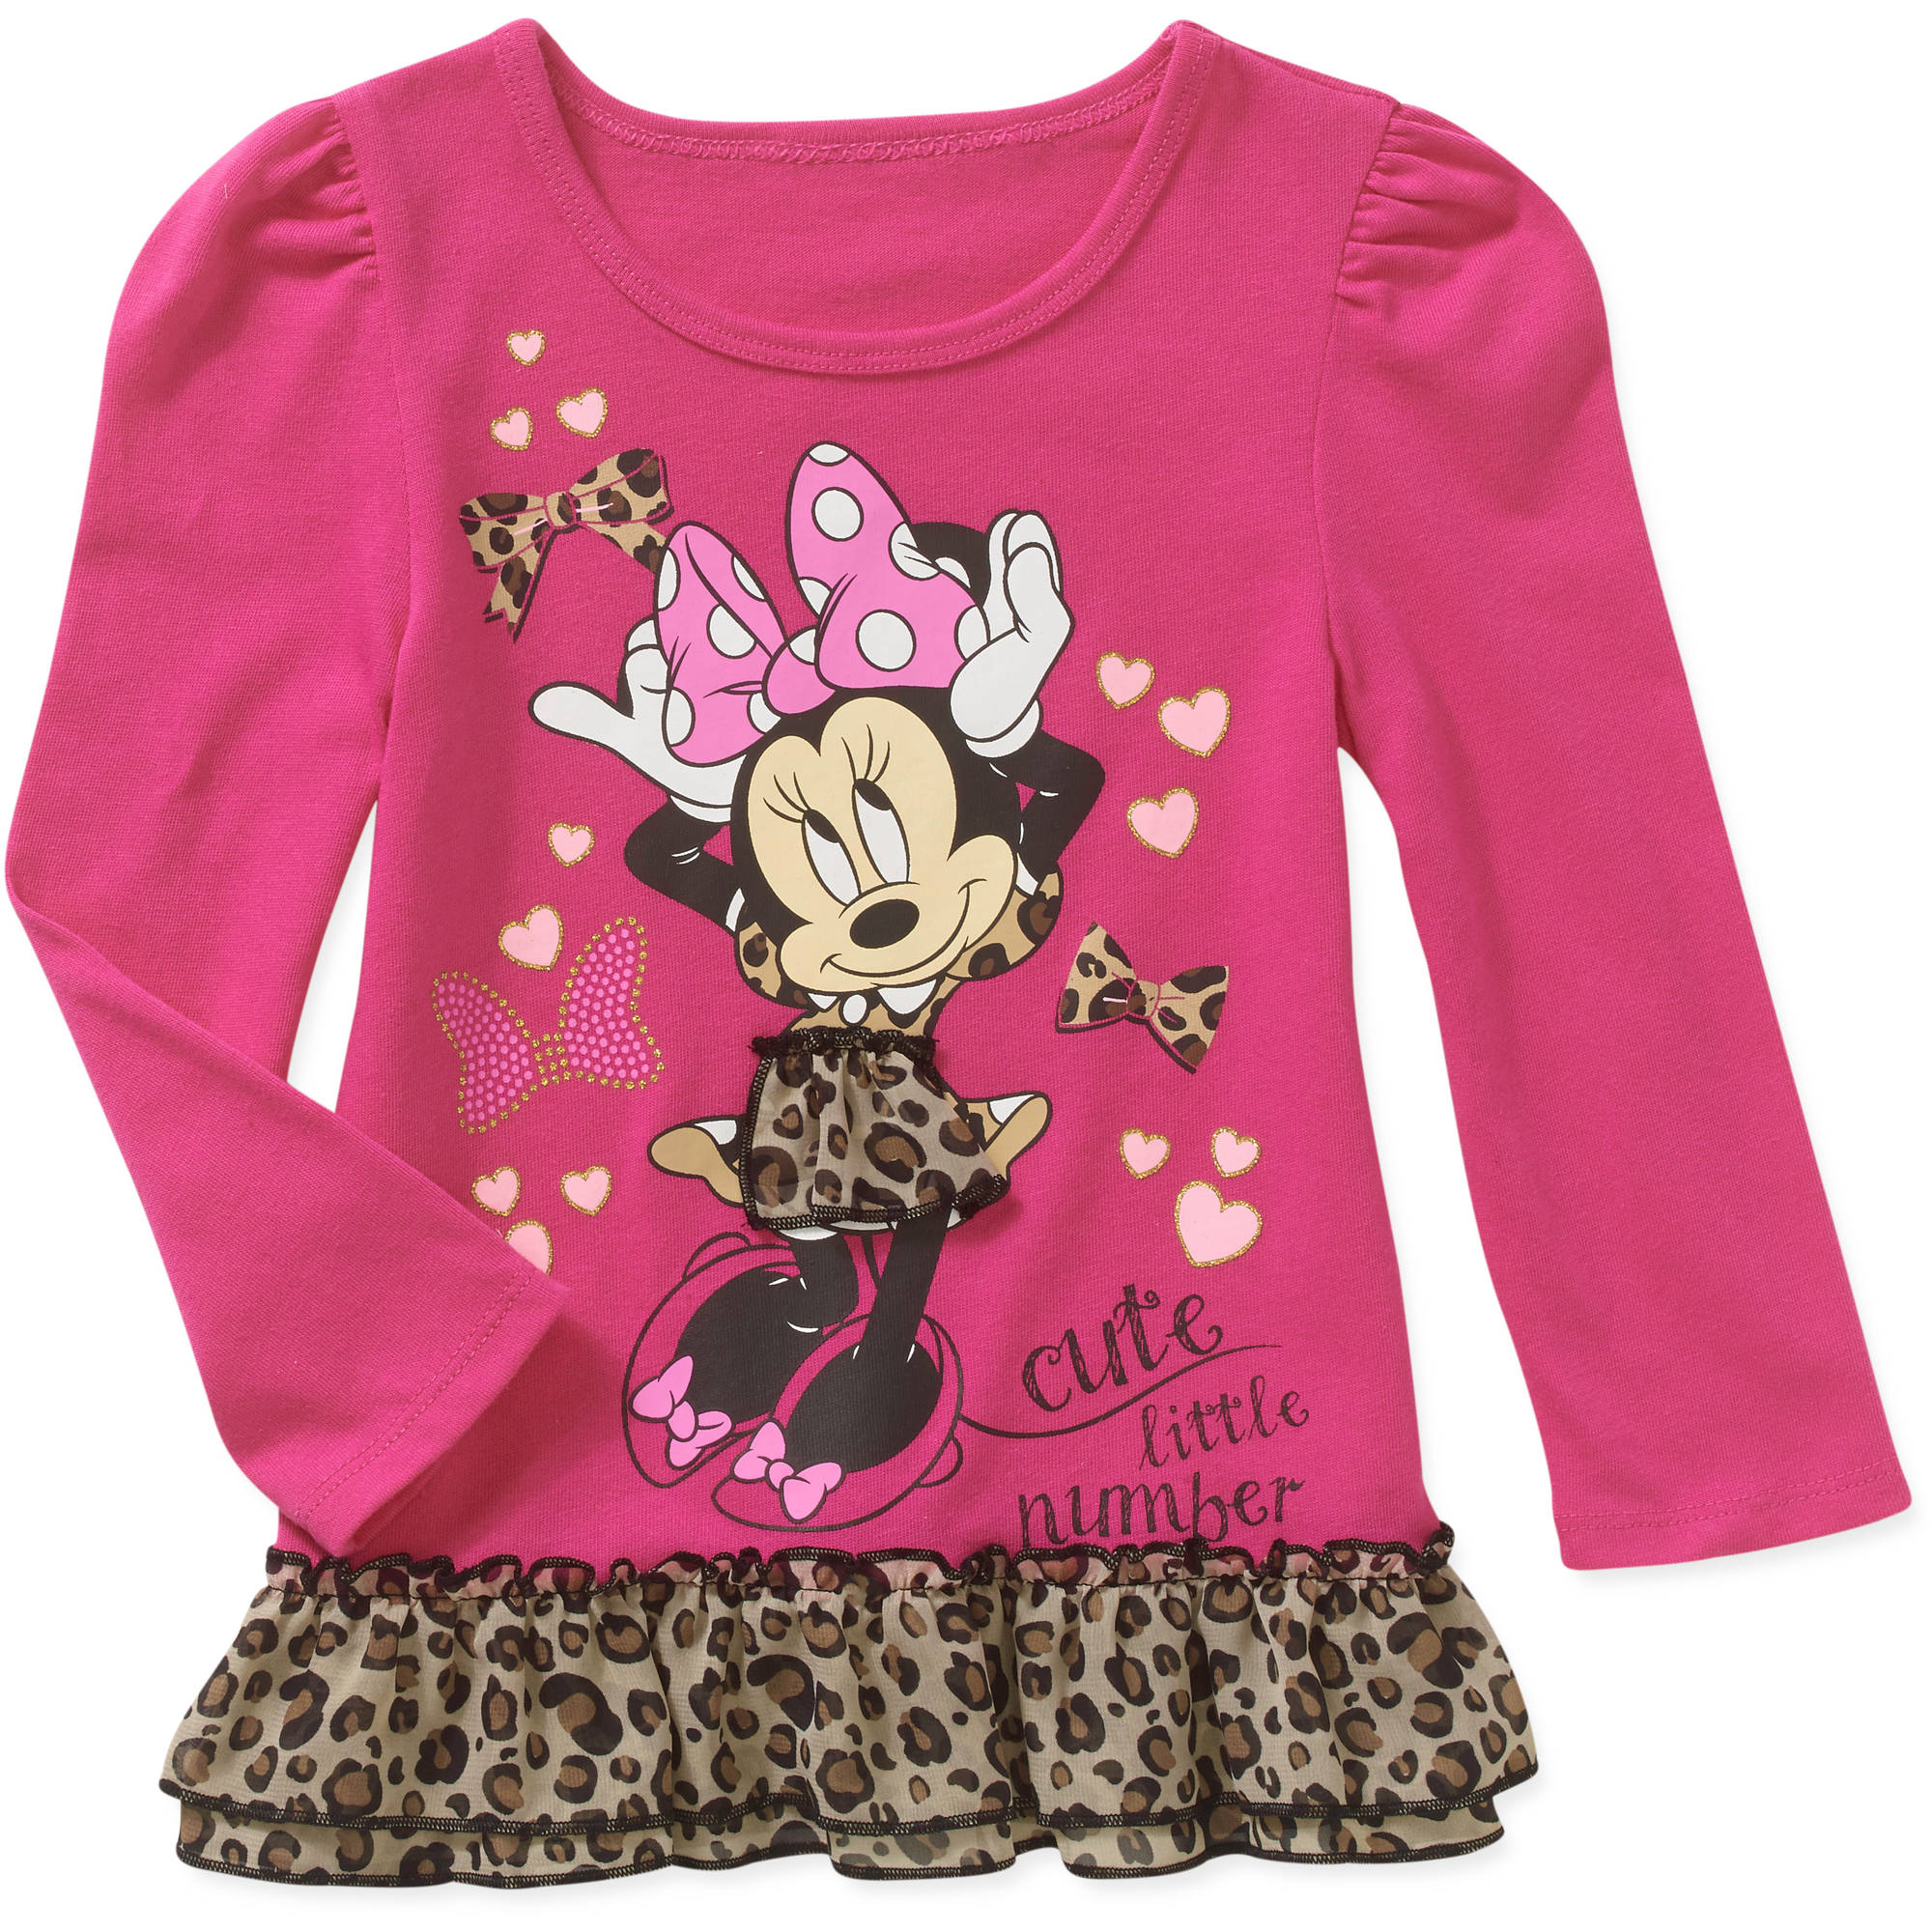 Minnie Mouse Baby Toddler Girl Long Sleeve Ruffled Fashion Tee